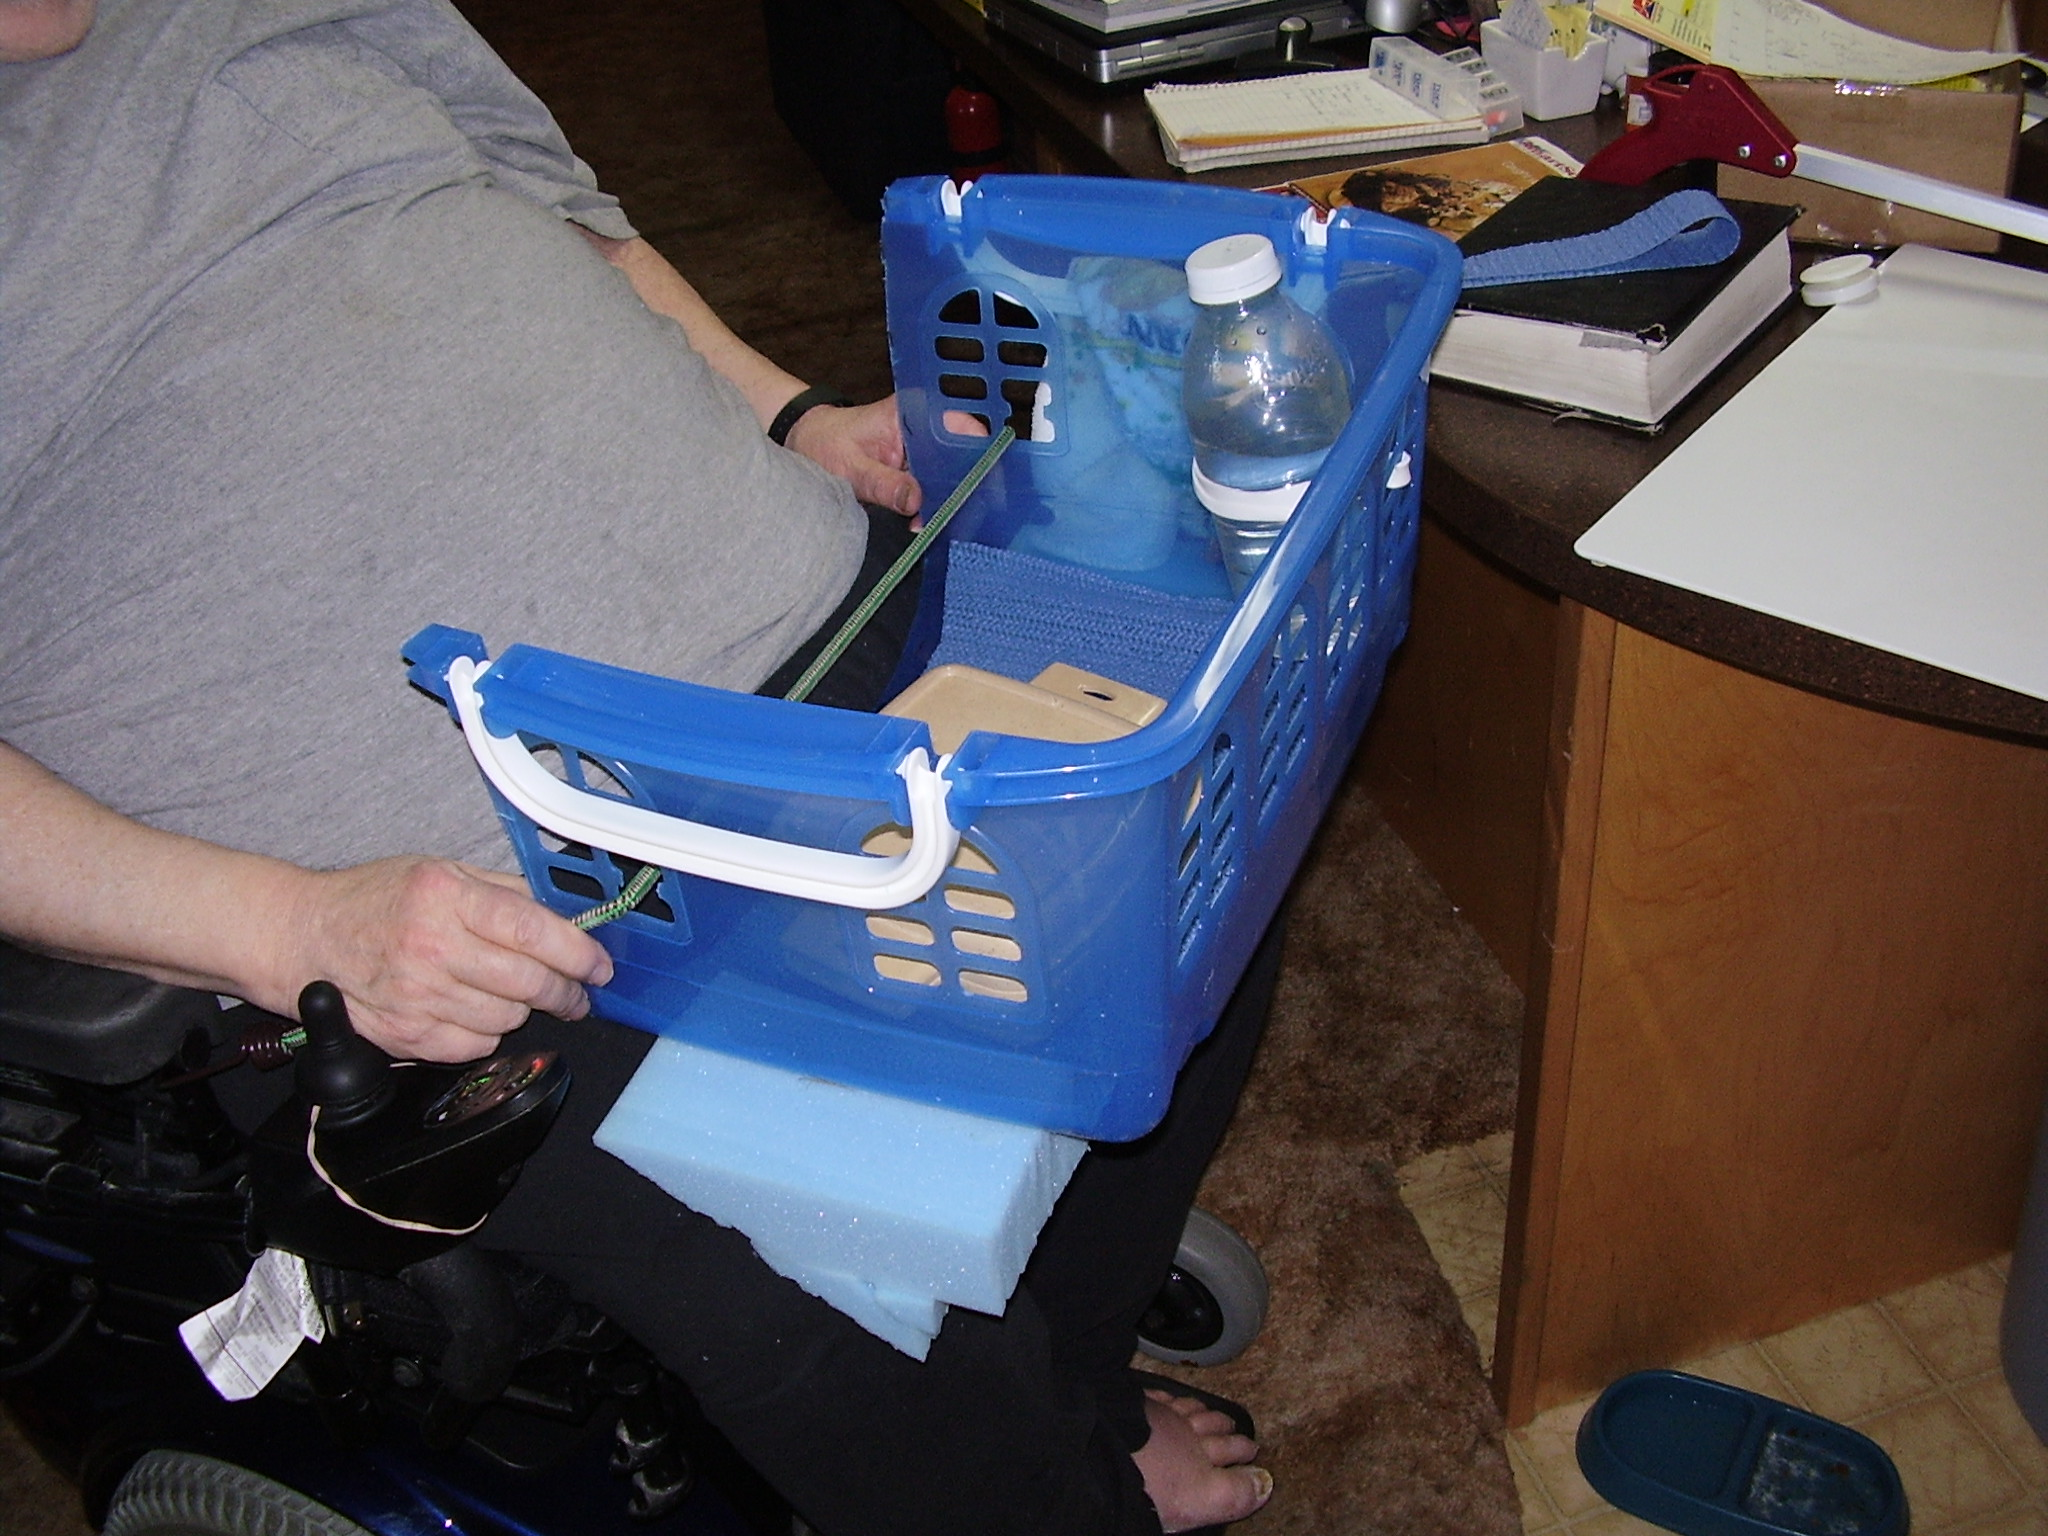 bungee cord chair diy knoll office manual options for transporting food when using a power